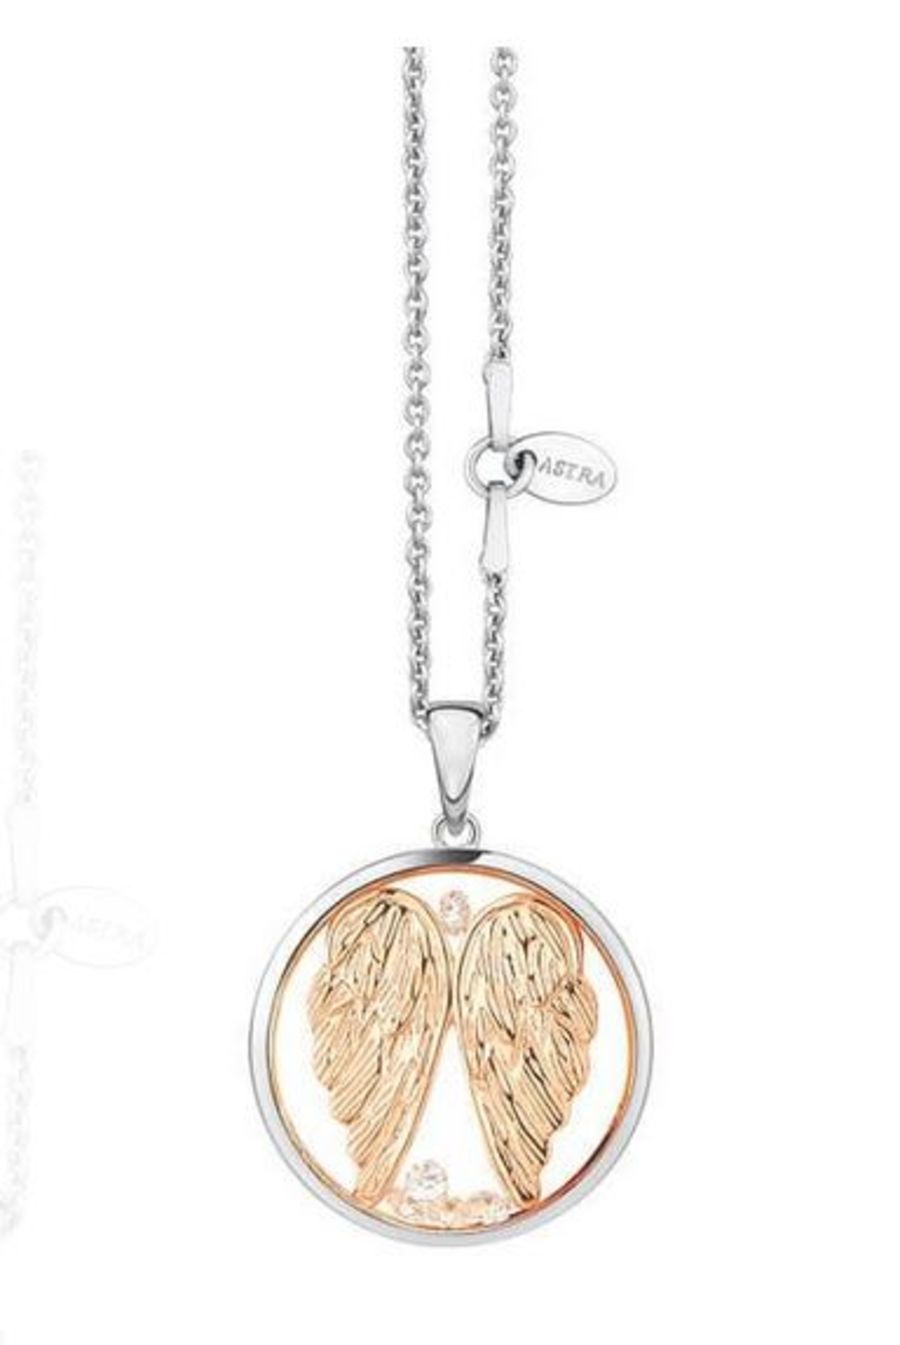 Guardian Silver Pendant  by Astra Jewellery